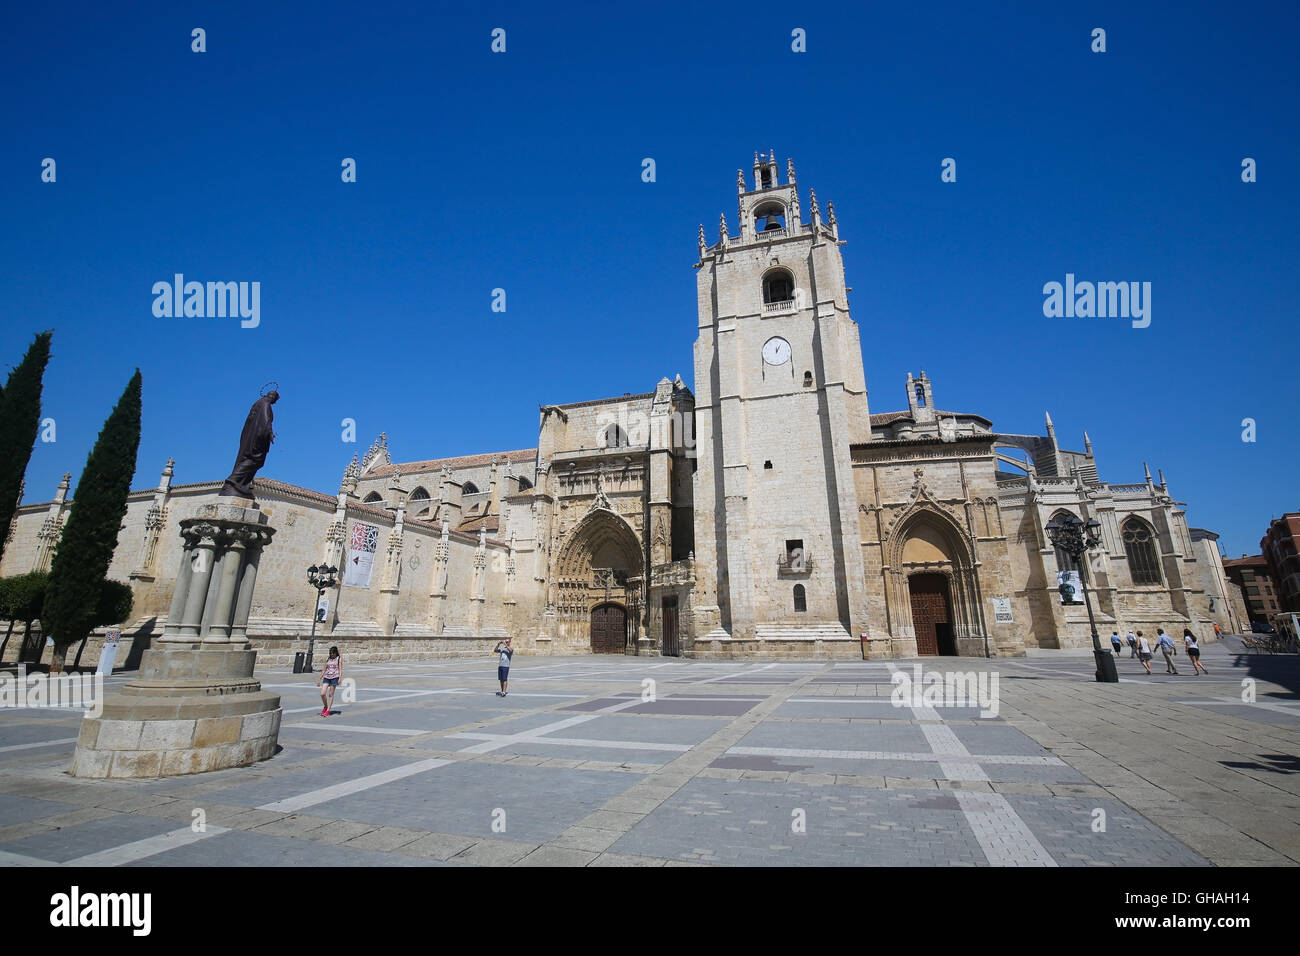 PALENCIA, SPAIN - JULY 10, 2016: Palencia Cathedral (Catedral de san Antolin), popularly known as the unknown beauty, - Stock Image